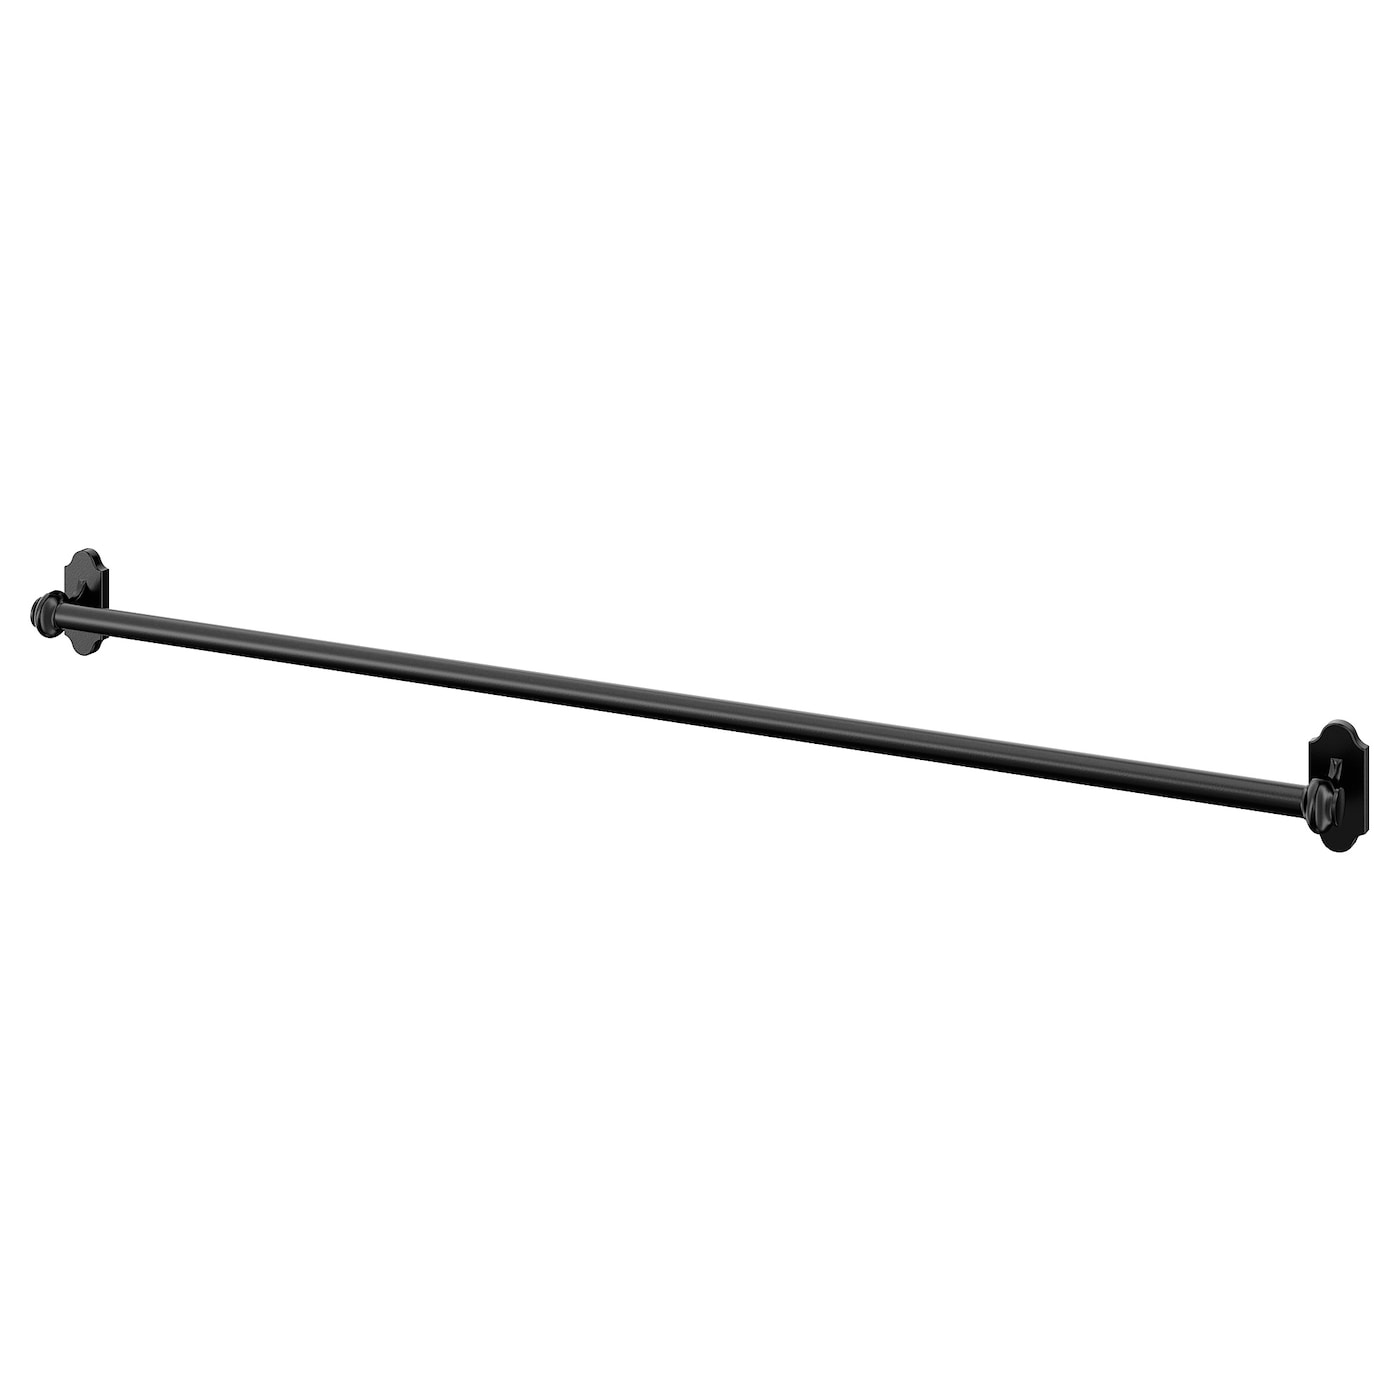 Shop FINTORP Rail from Ikea on Openhaus